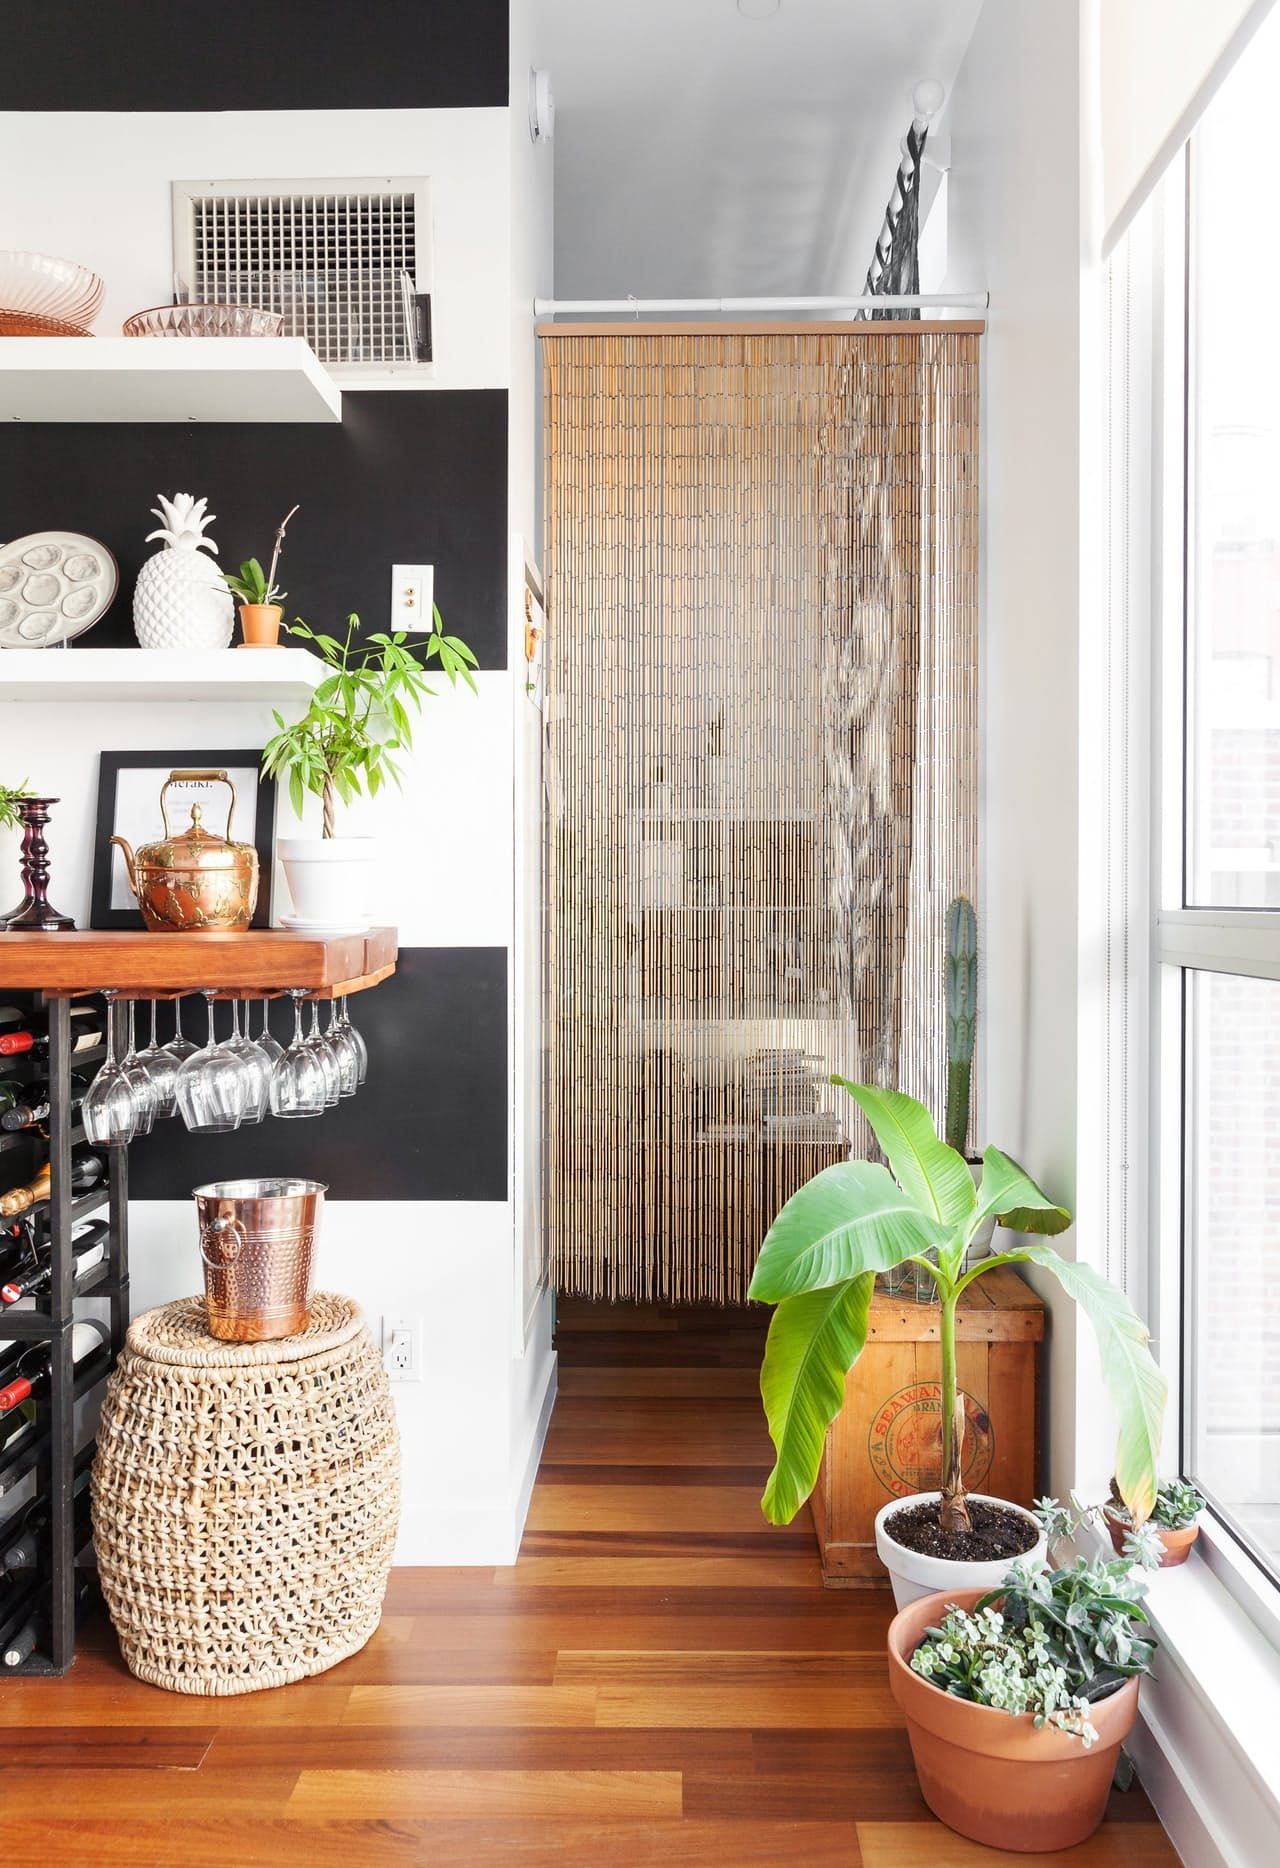 Small Living Room Apartment Therapy: Sarah's Small & Stylish Brooklyn Apartment